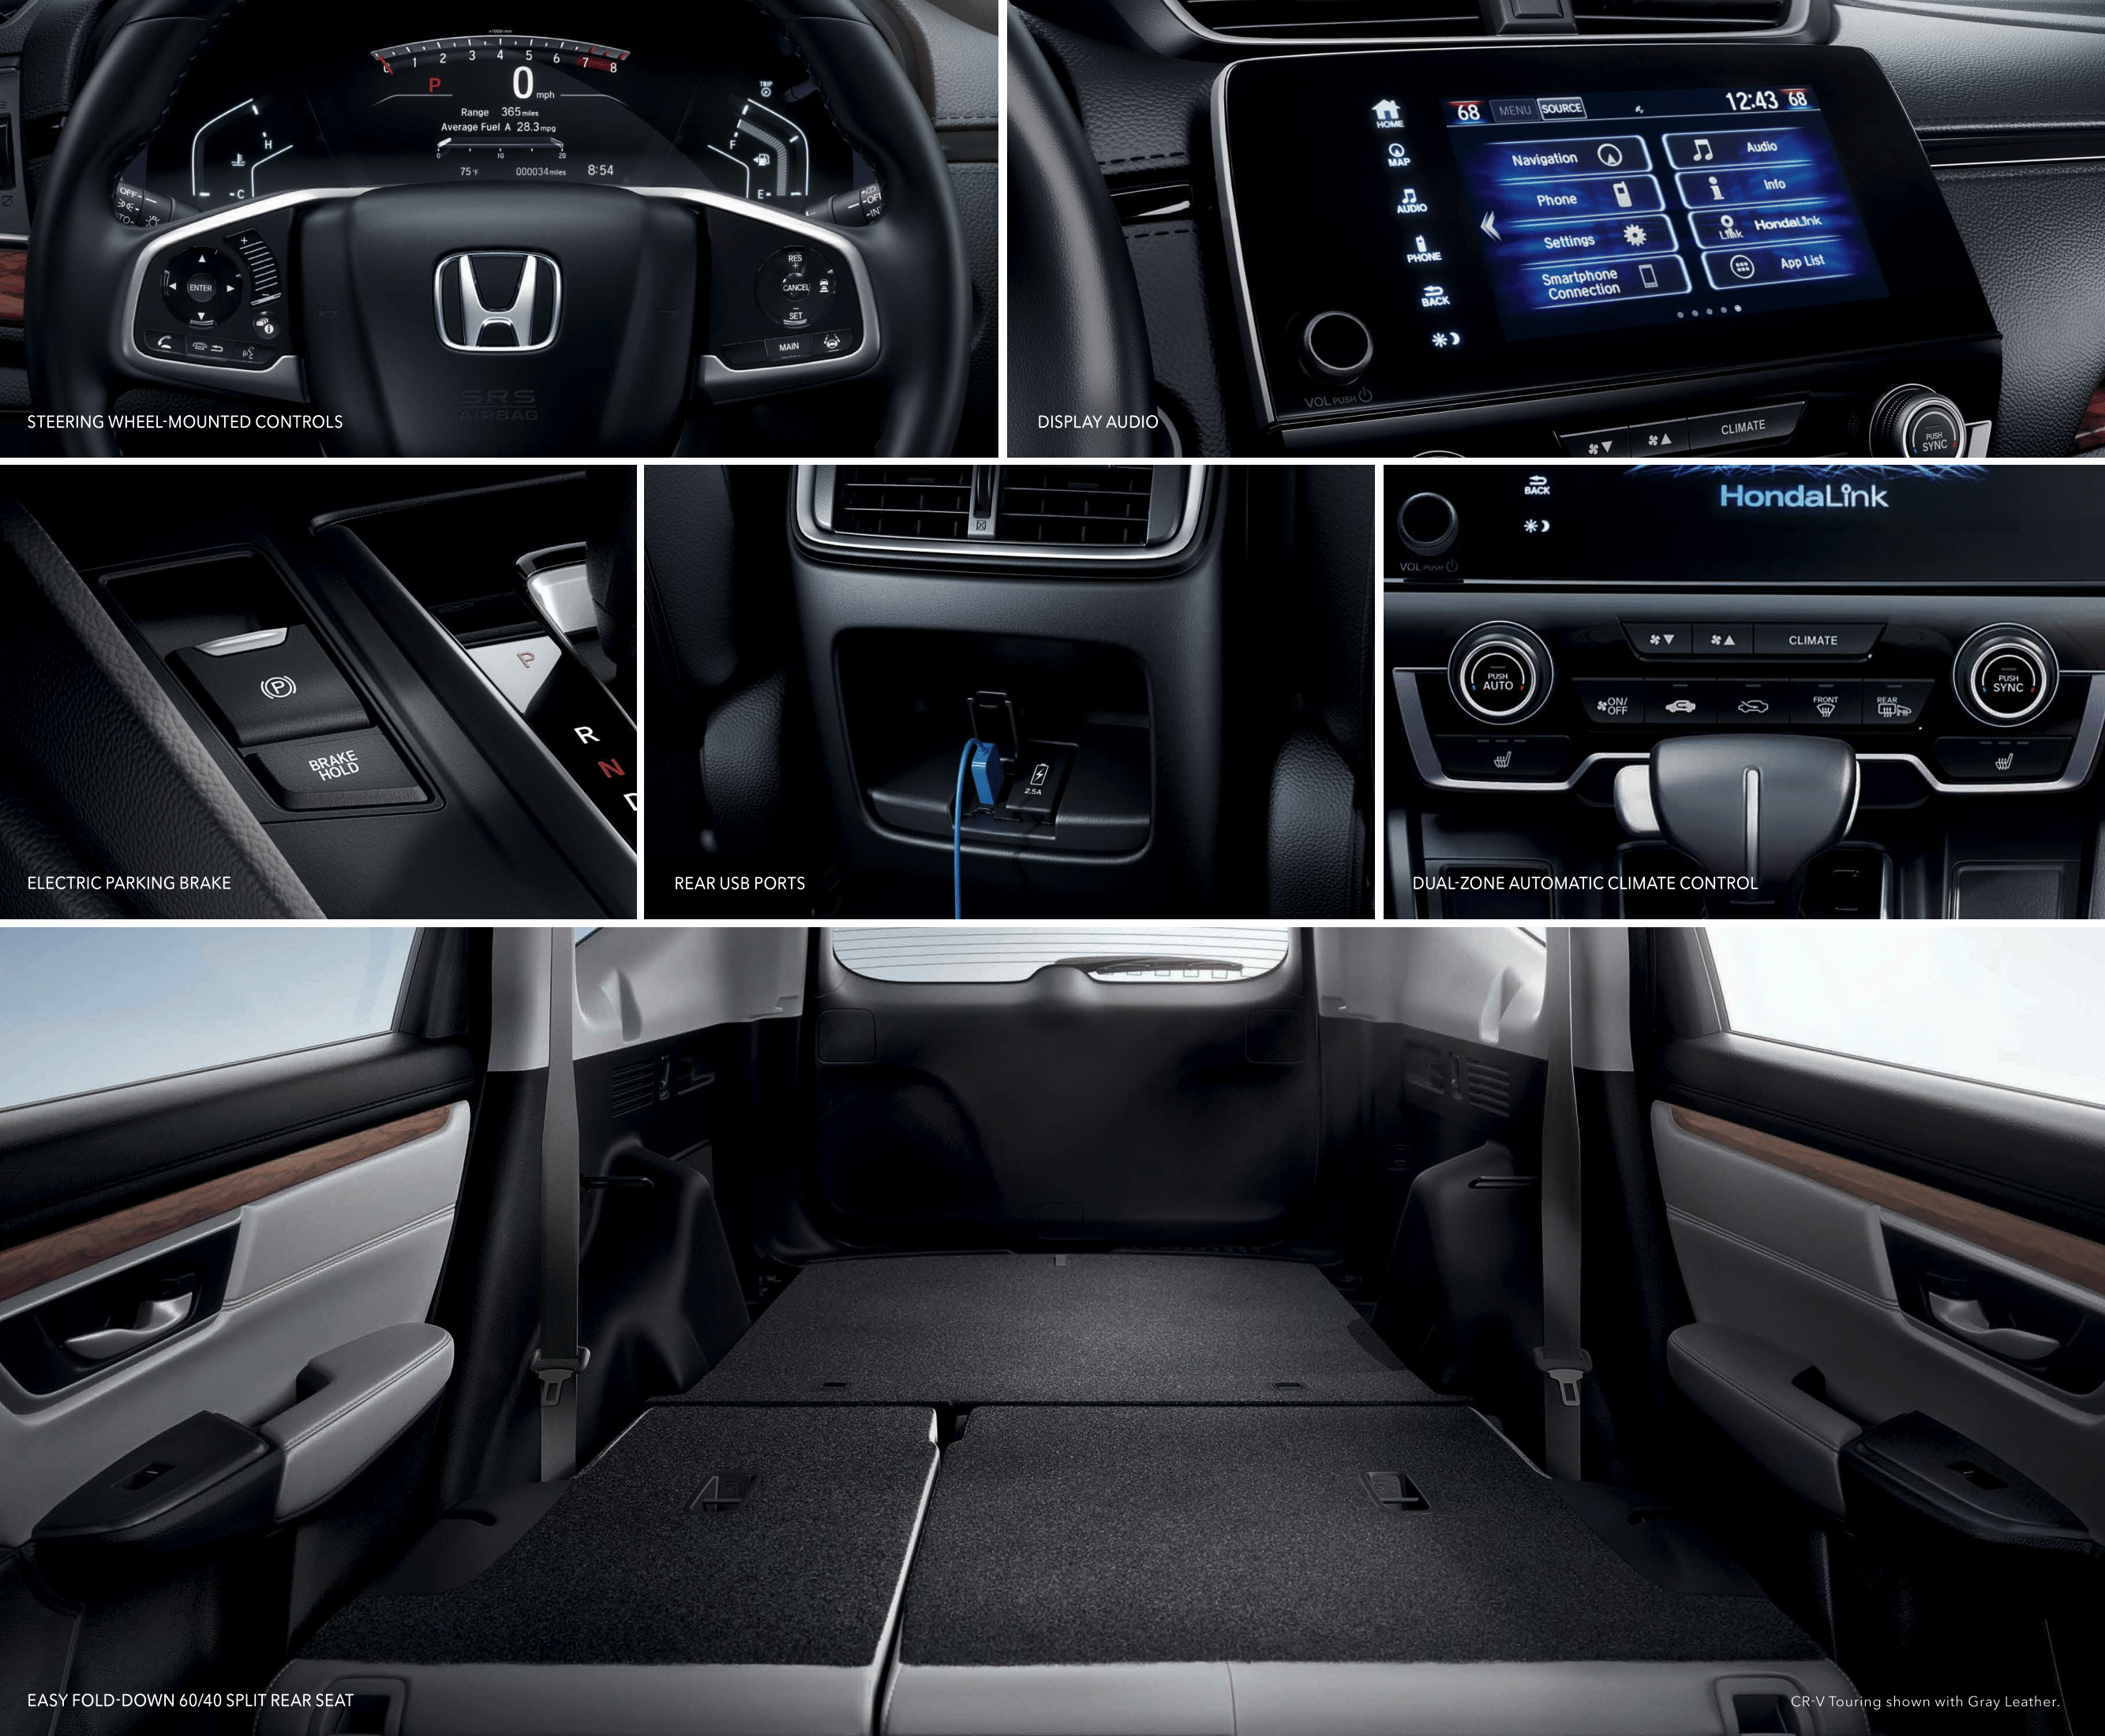 Honda Cr V Research Model Overview Wilde Sarasota 2003 Oil Pressure Sensor Grid View Of Many Interior Features The 2017